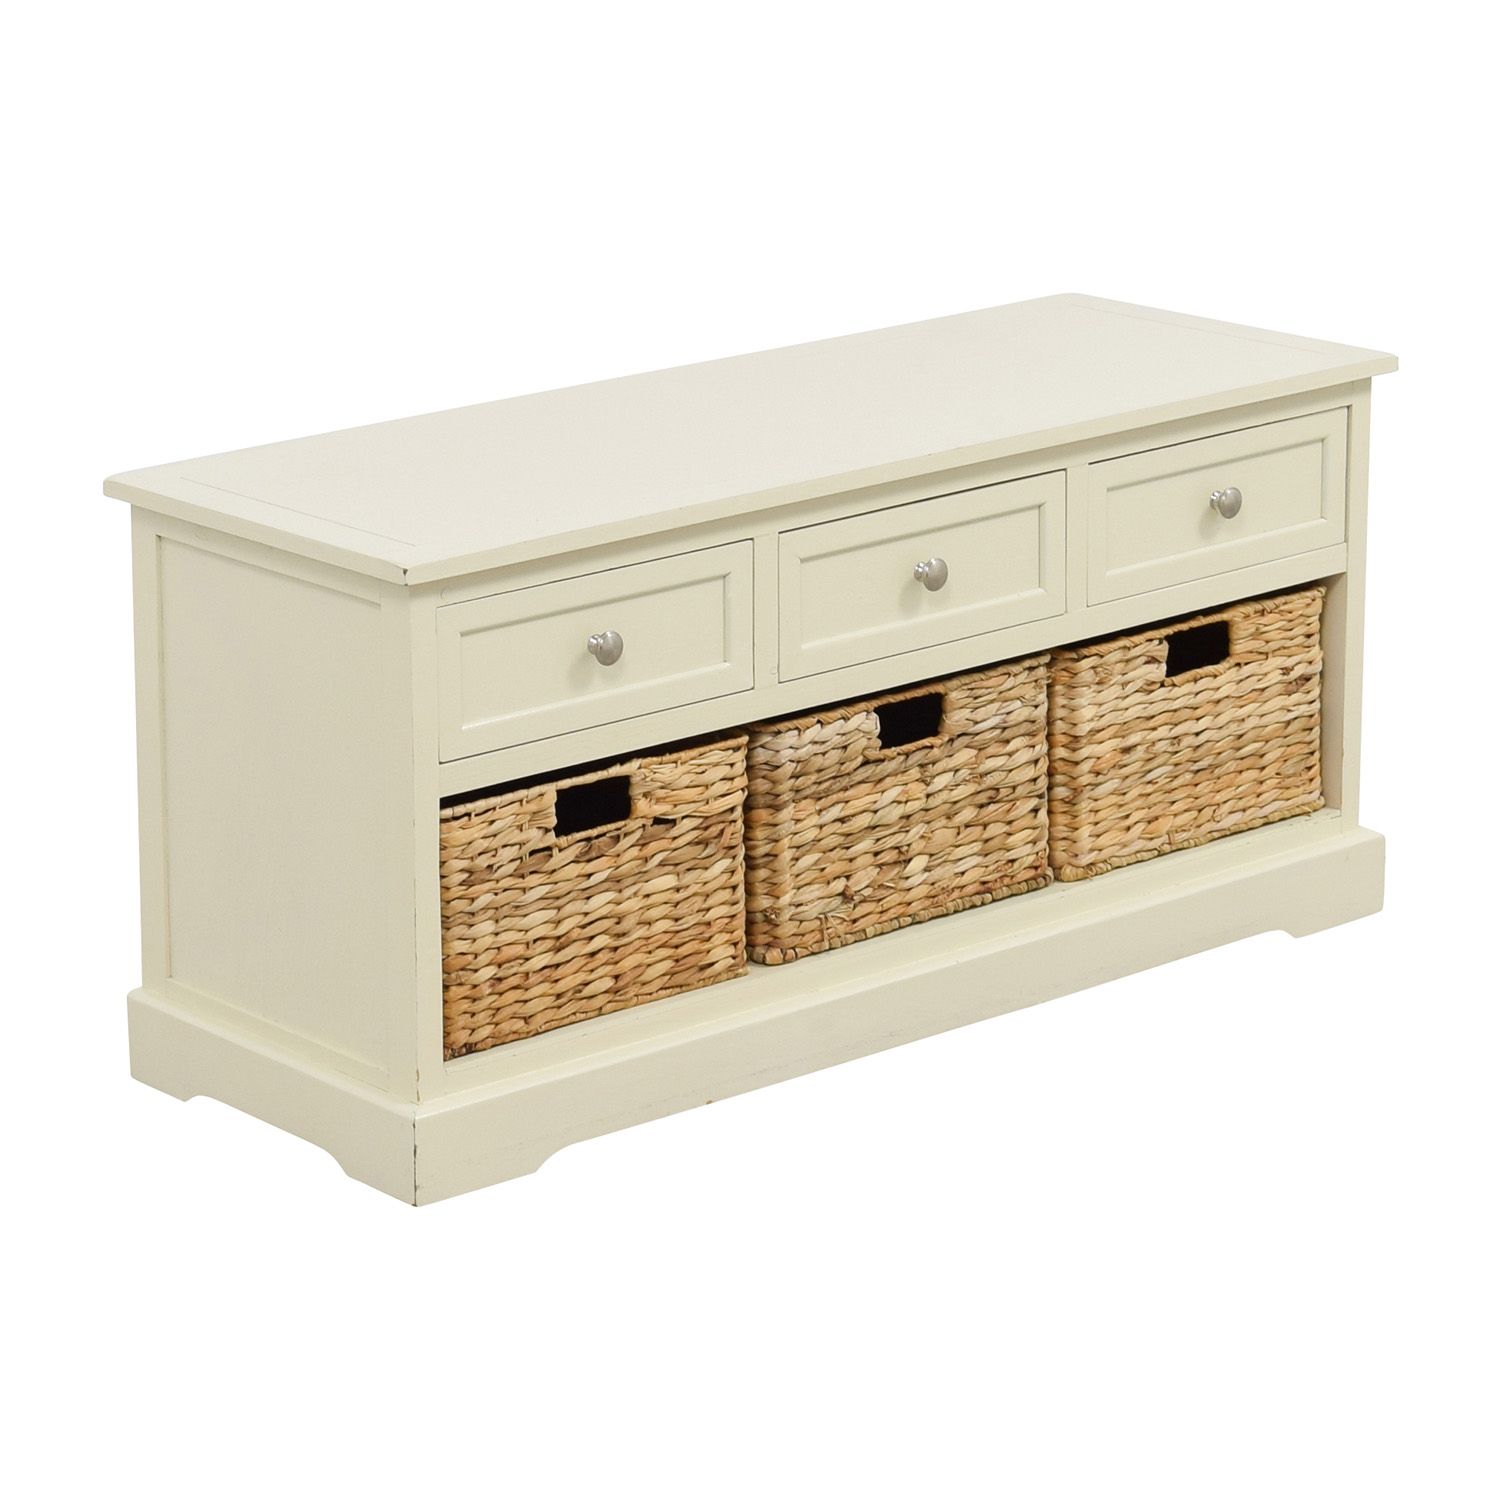 White Media Center with Three Wicker Baskets dimensions